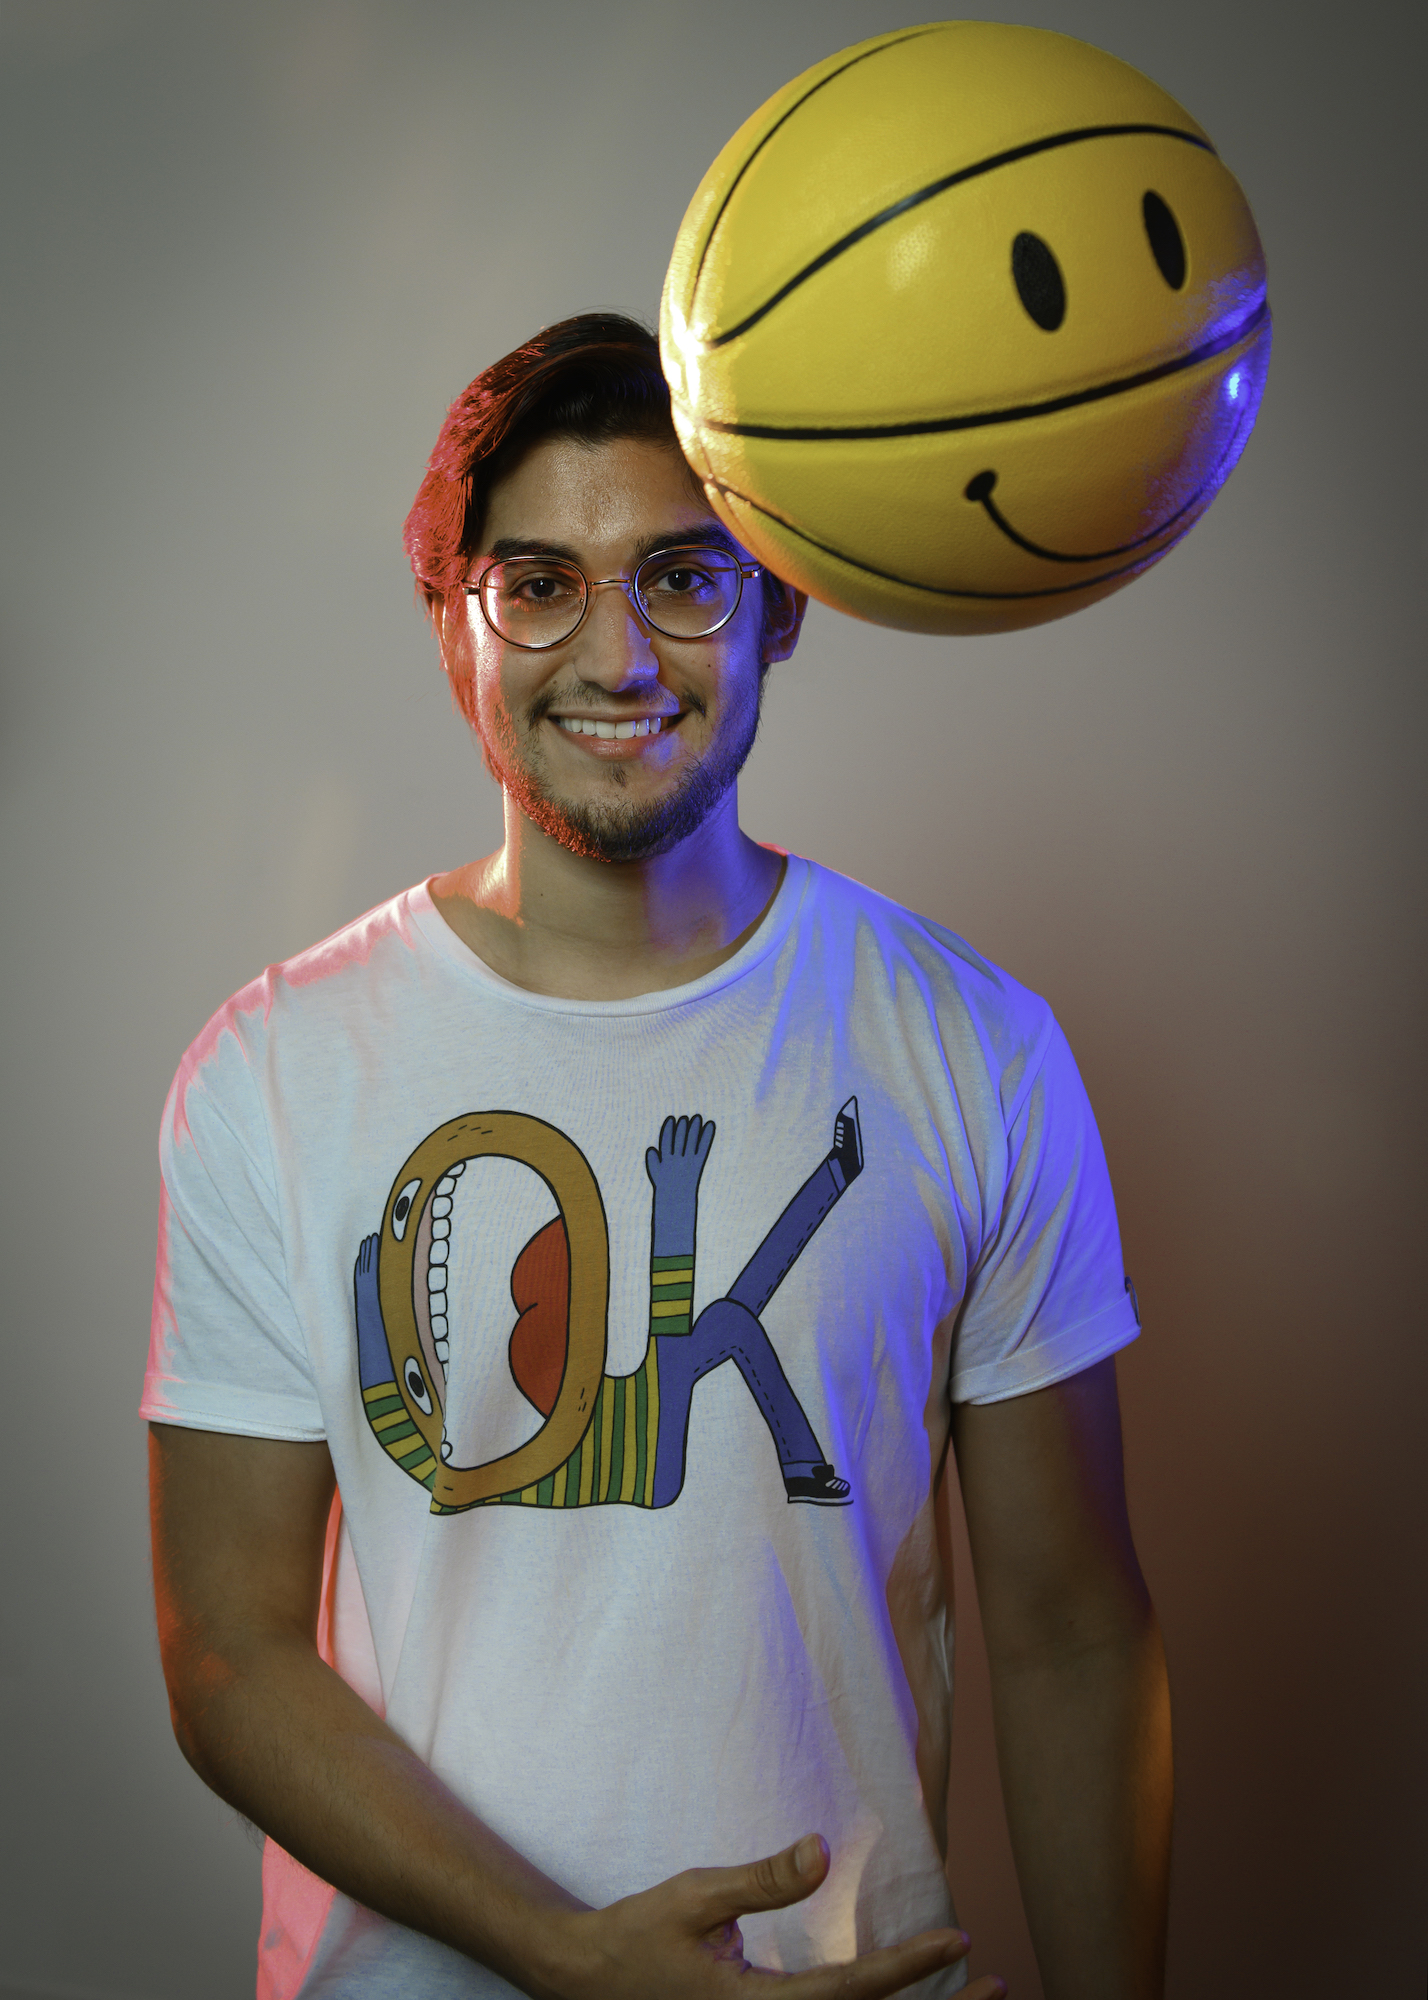 A smiling man wearing round glasses tosses a yellow basketball with a happy face on its surface.